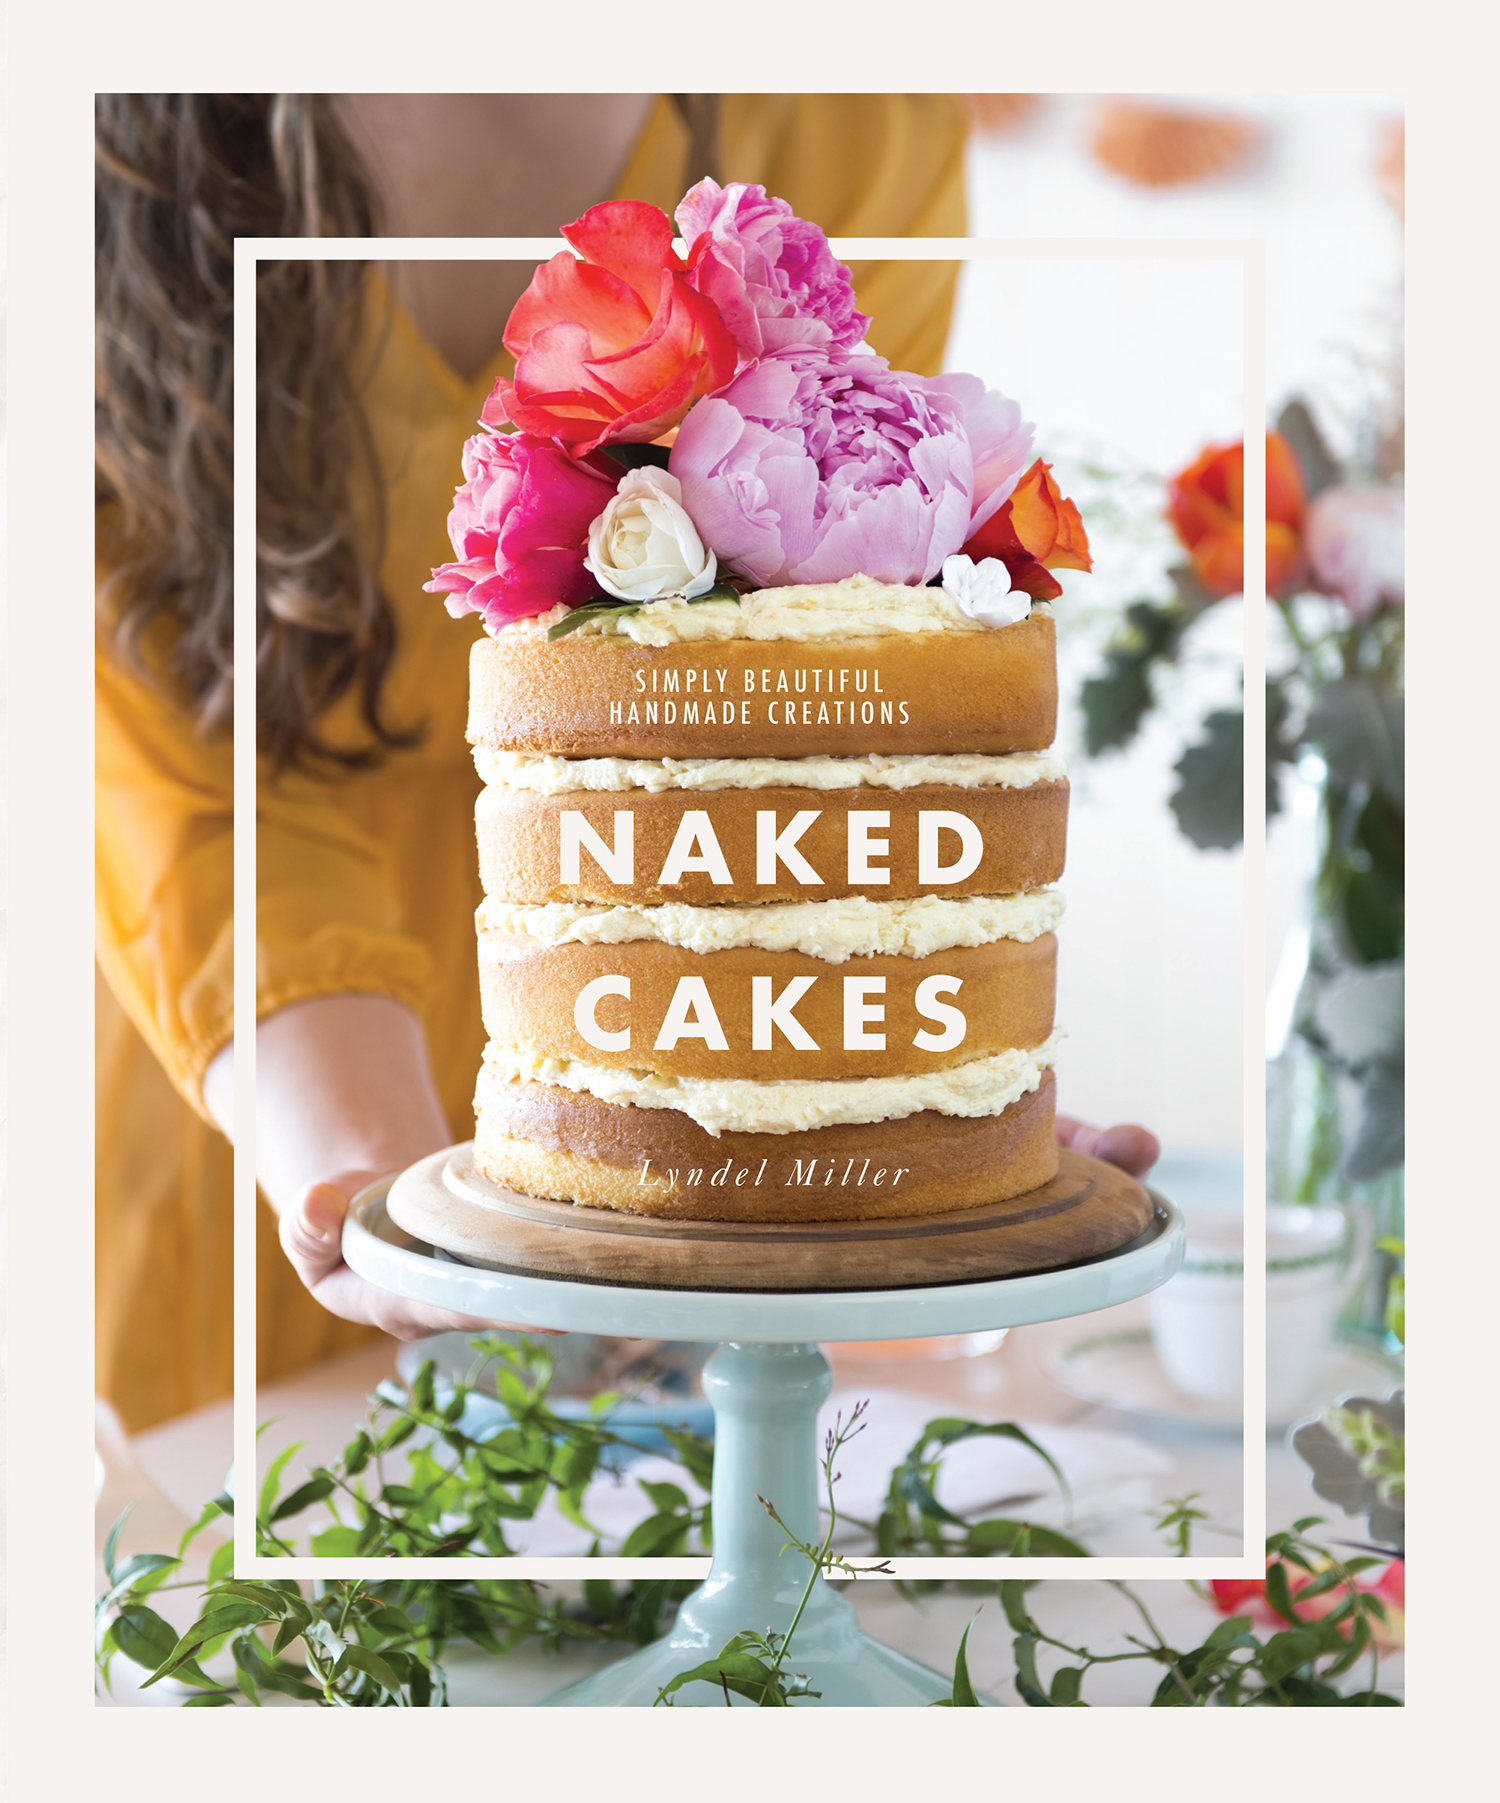 Naked Cakes - Lyndel Miller - 9781743365342 - Murdoch books: https://www.murdochbooks.com.au/browse/books/baking/Naked-Cakes...